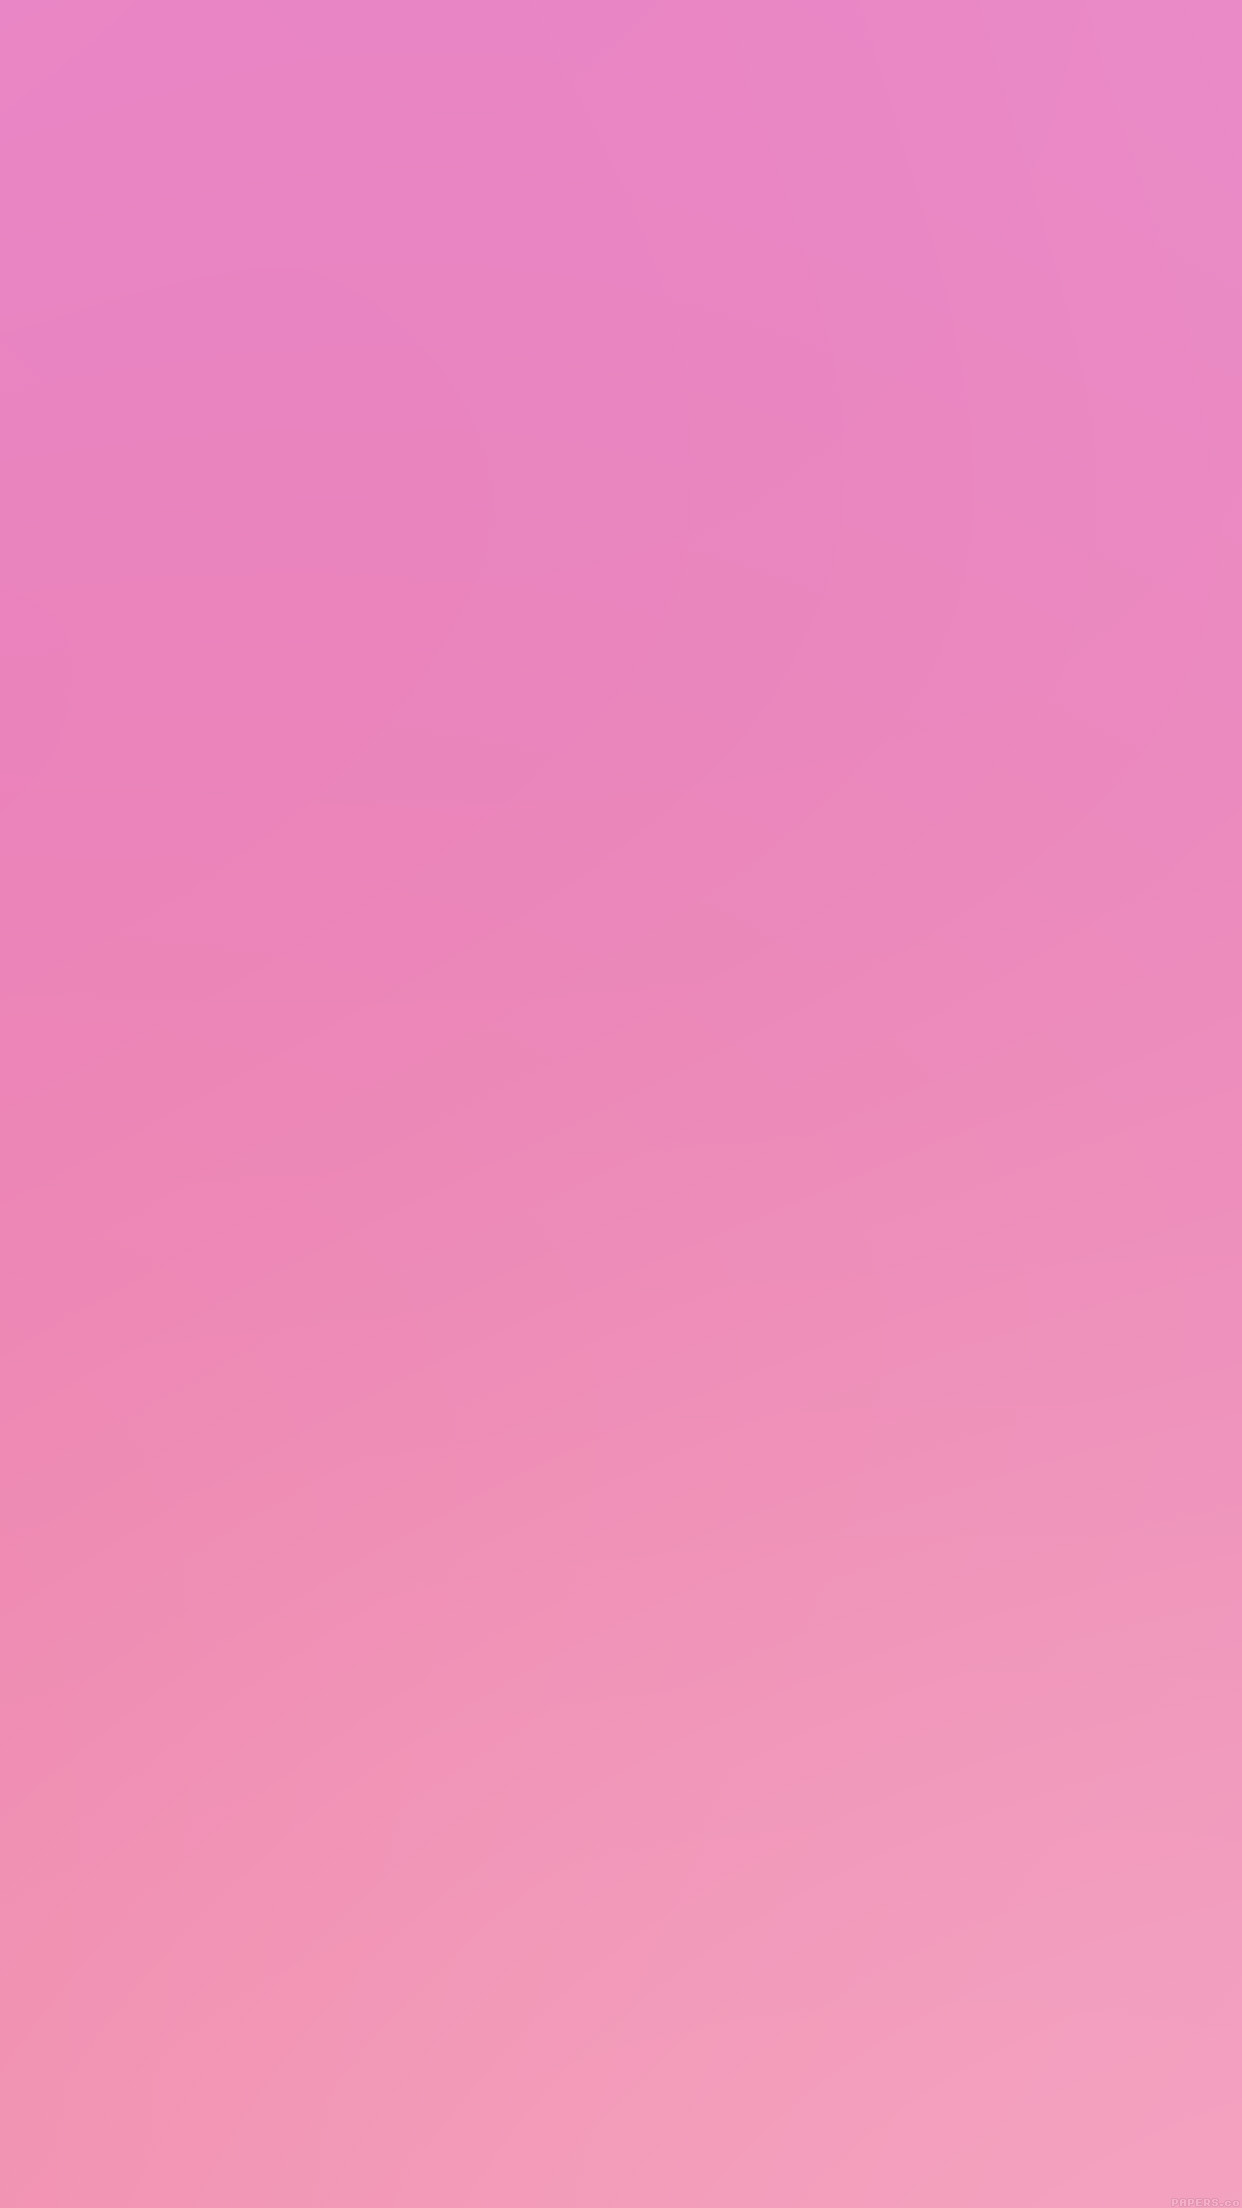 baby pink gradation blur android wallpaper - android hd wallpapers